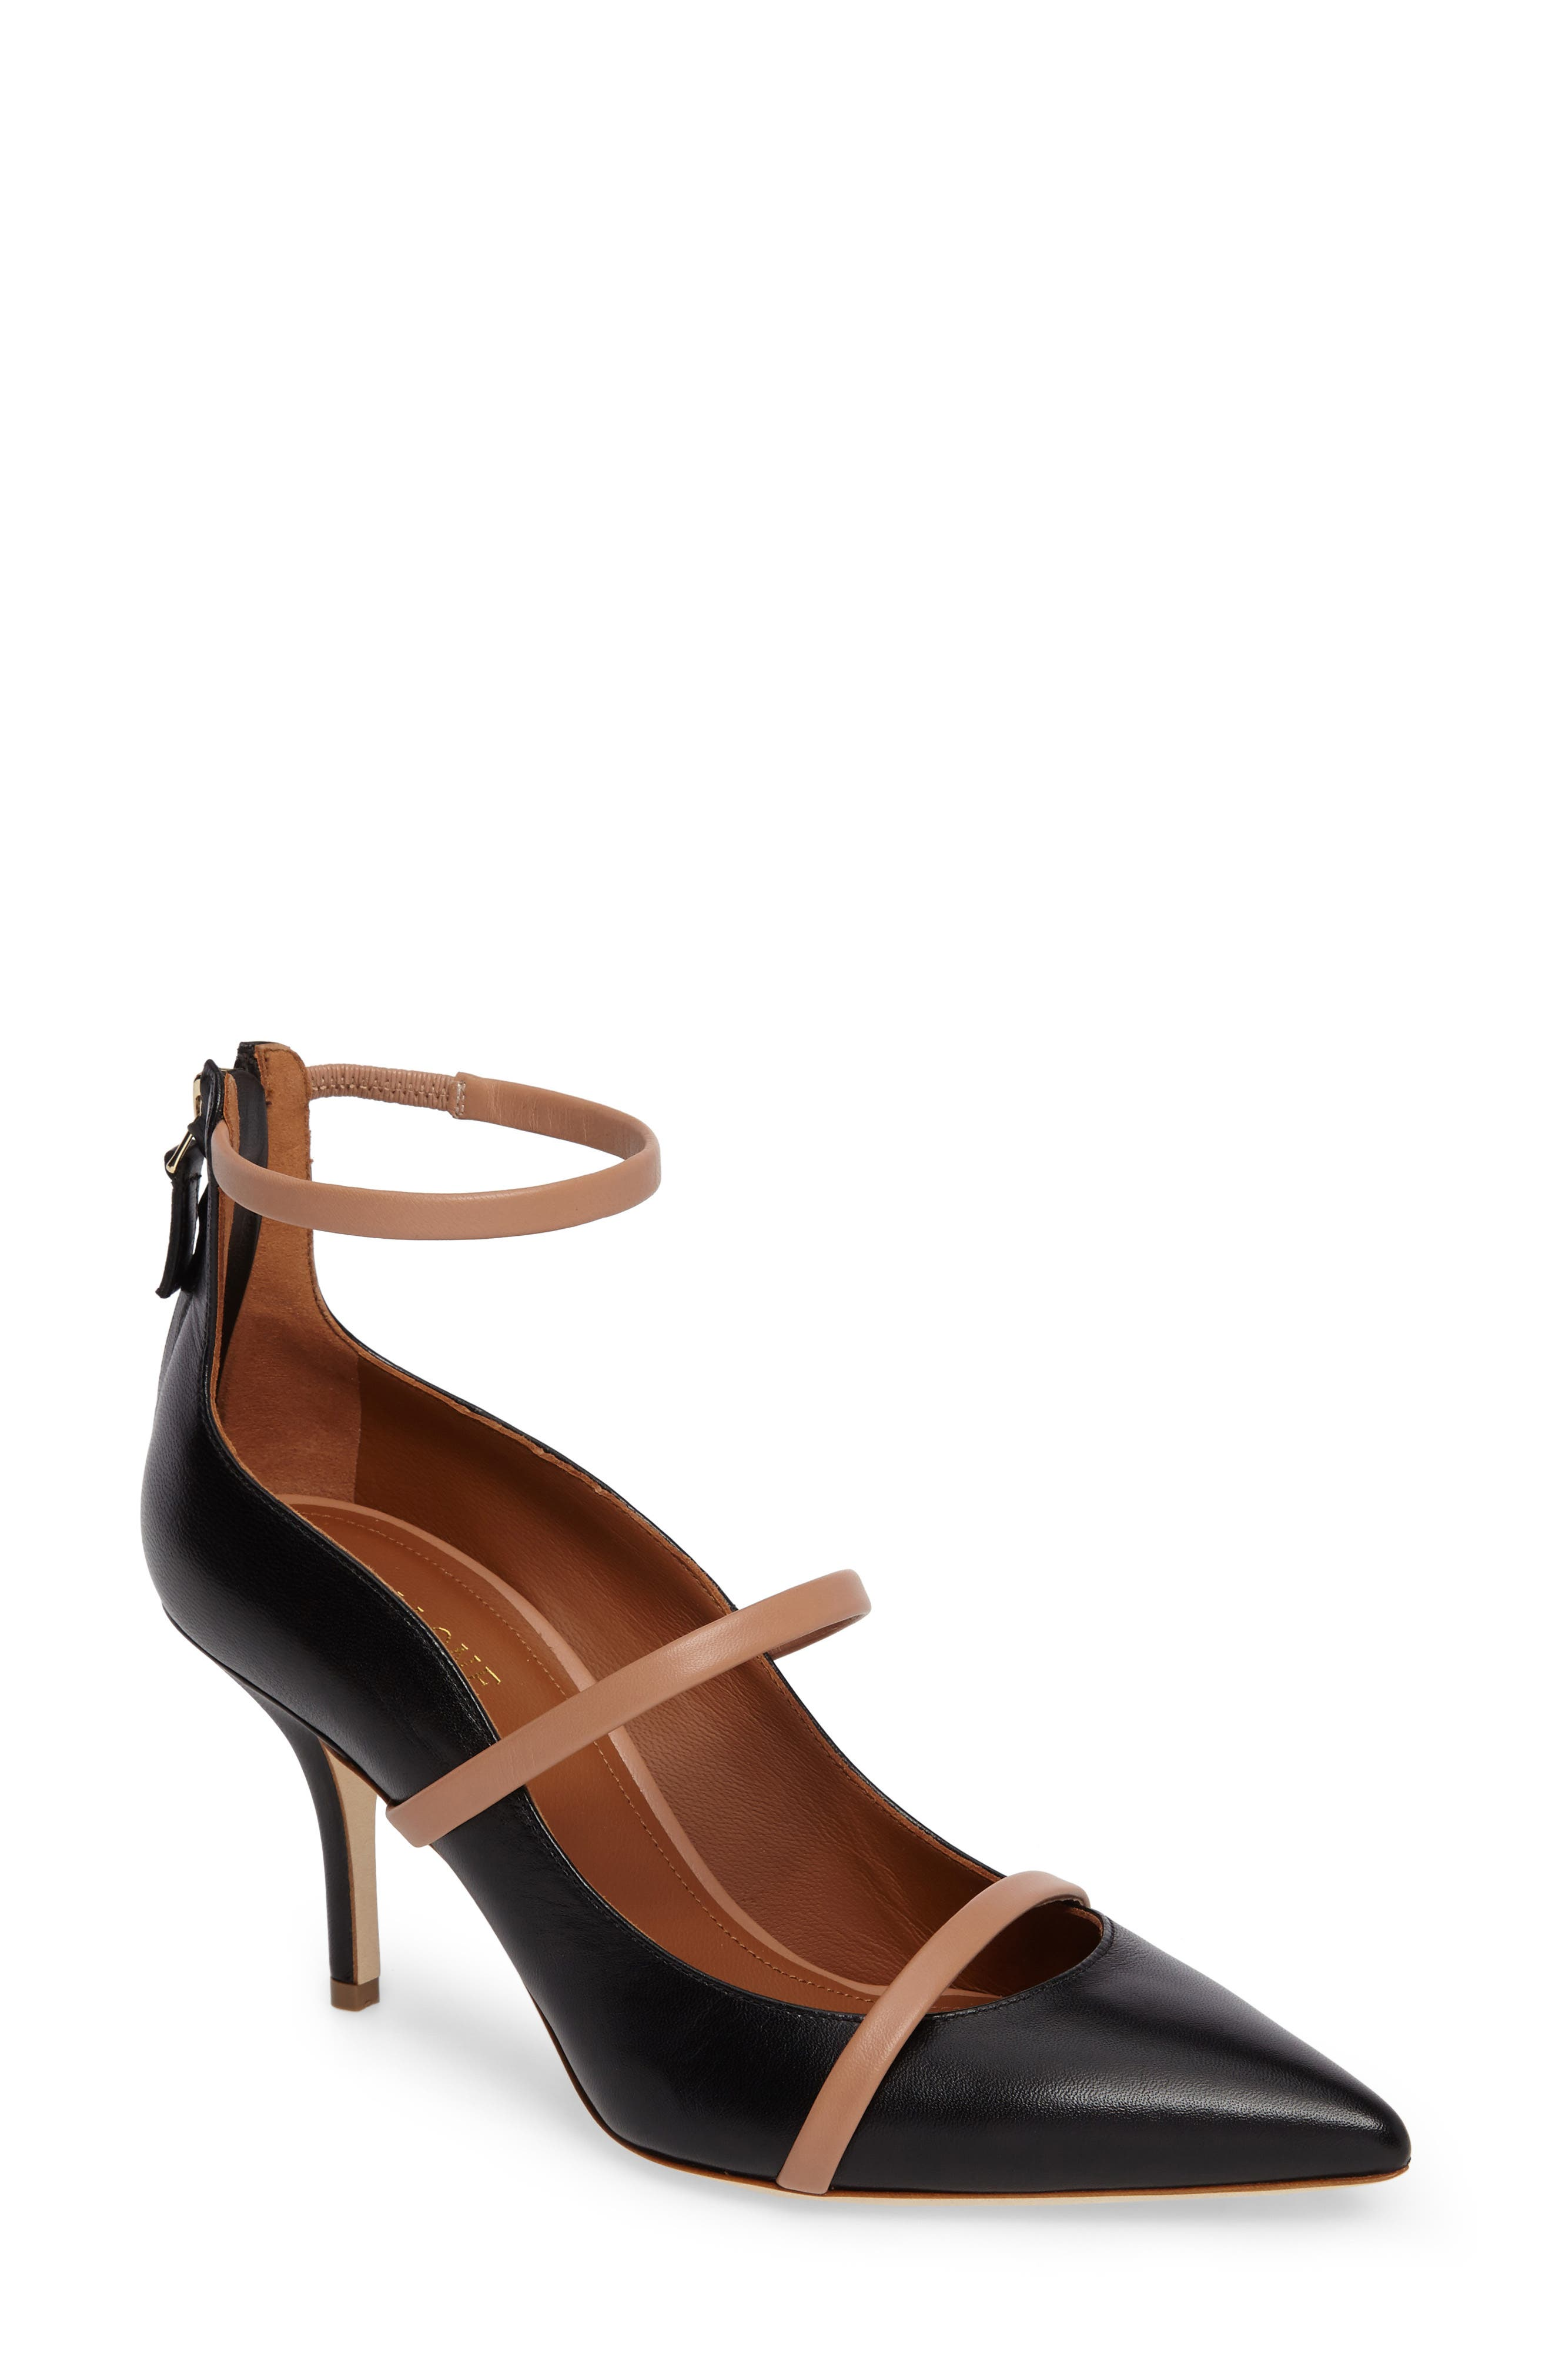 Robyn Ankle Strap Pump,                             Main thumbnail 1, color,                             BLACK/ NUDE